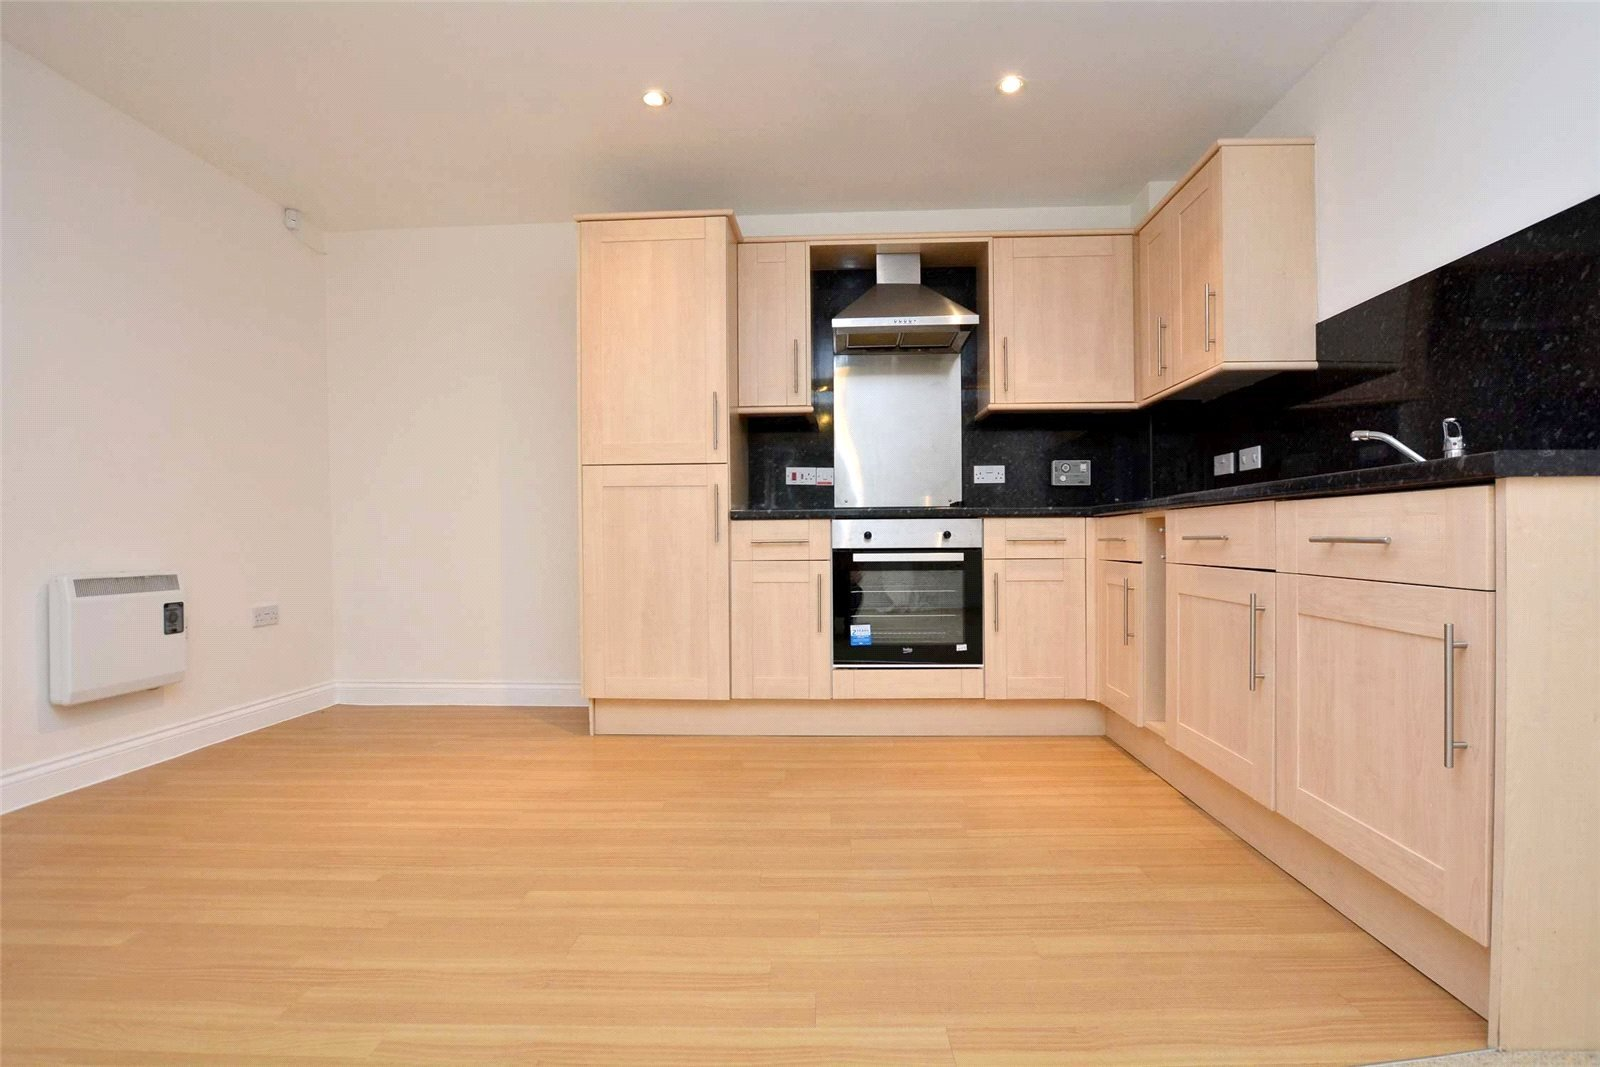 Property for sale in pudsey, interior of spacious kitchen